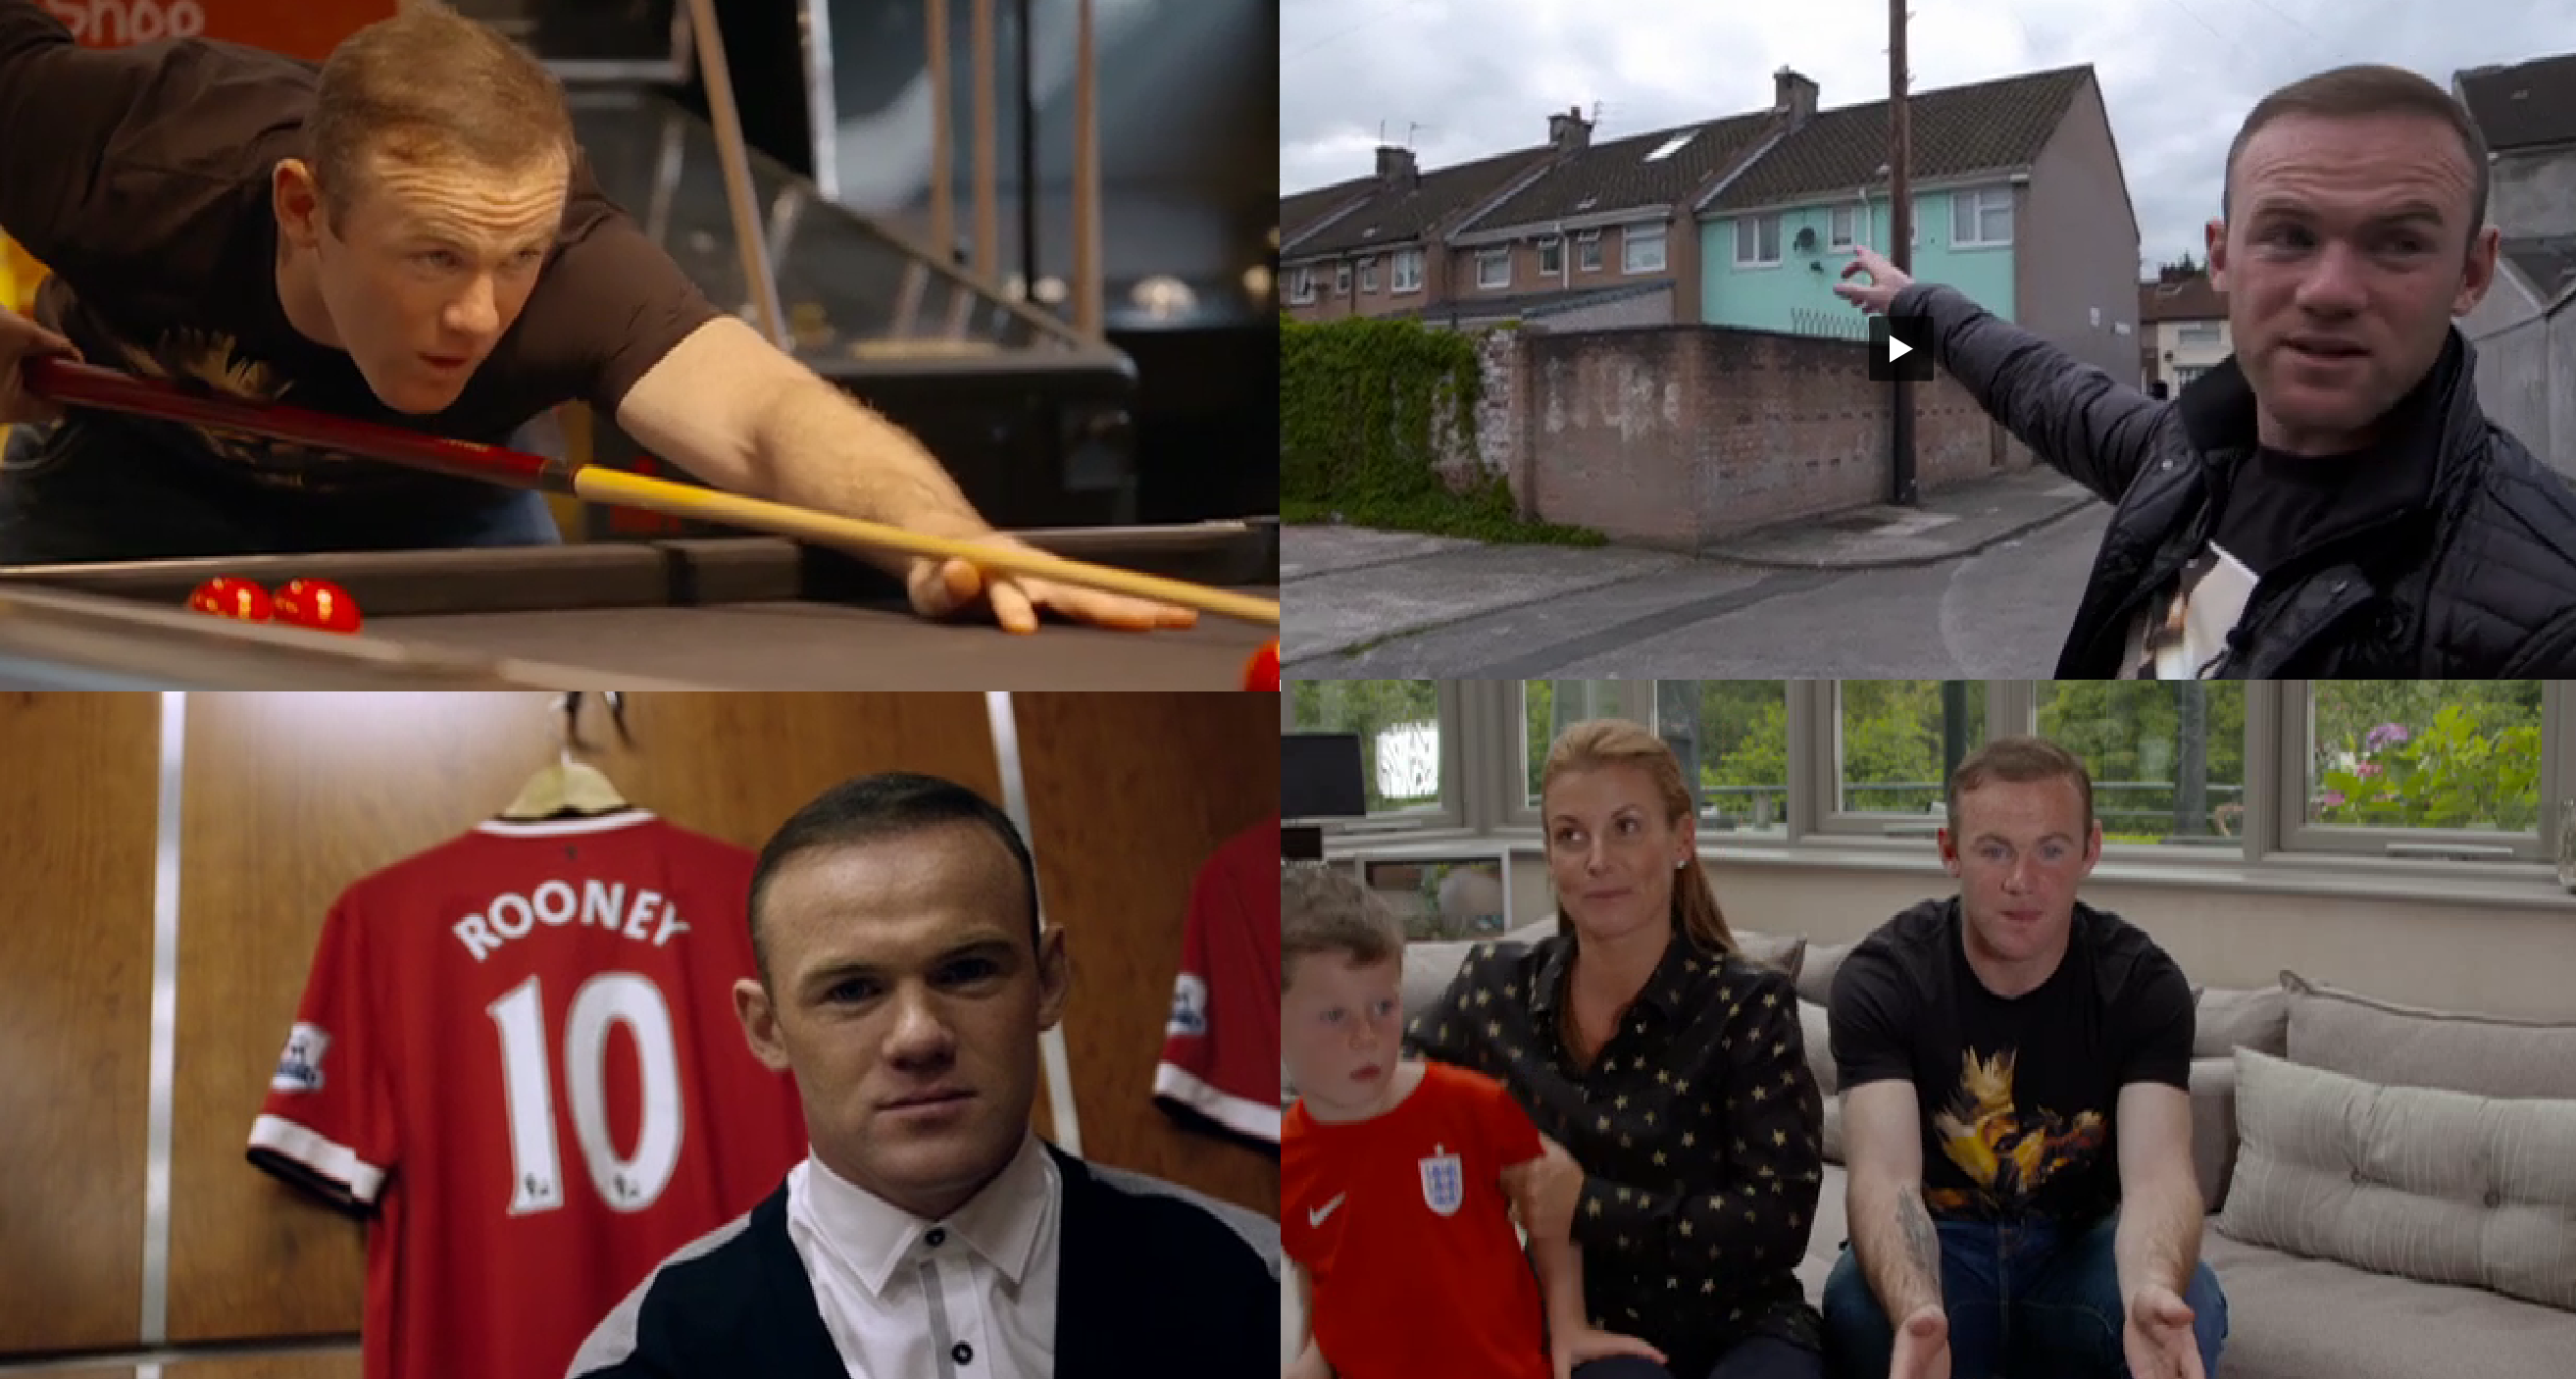 We're given unprecedented access to England's record goalscorer in Wayne Rooney: The Man behind the Goals